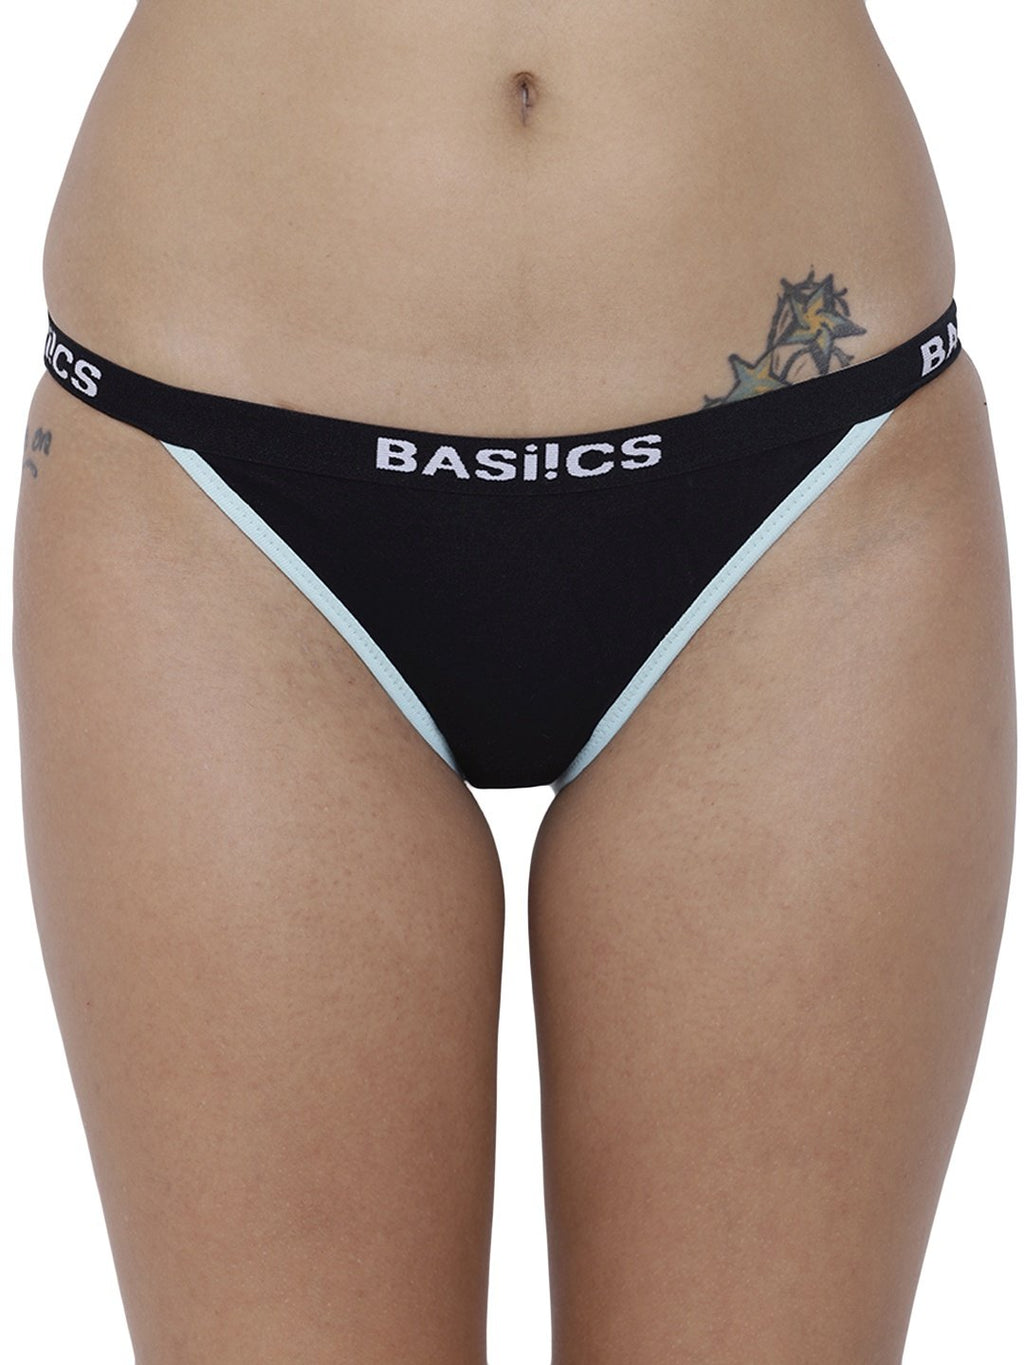 BASIICS Female Black Moda Fashionable Brief Panty